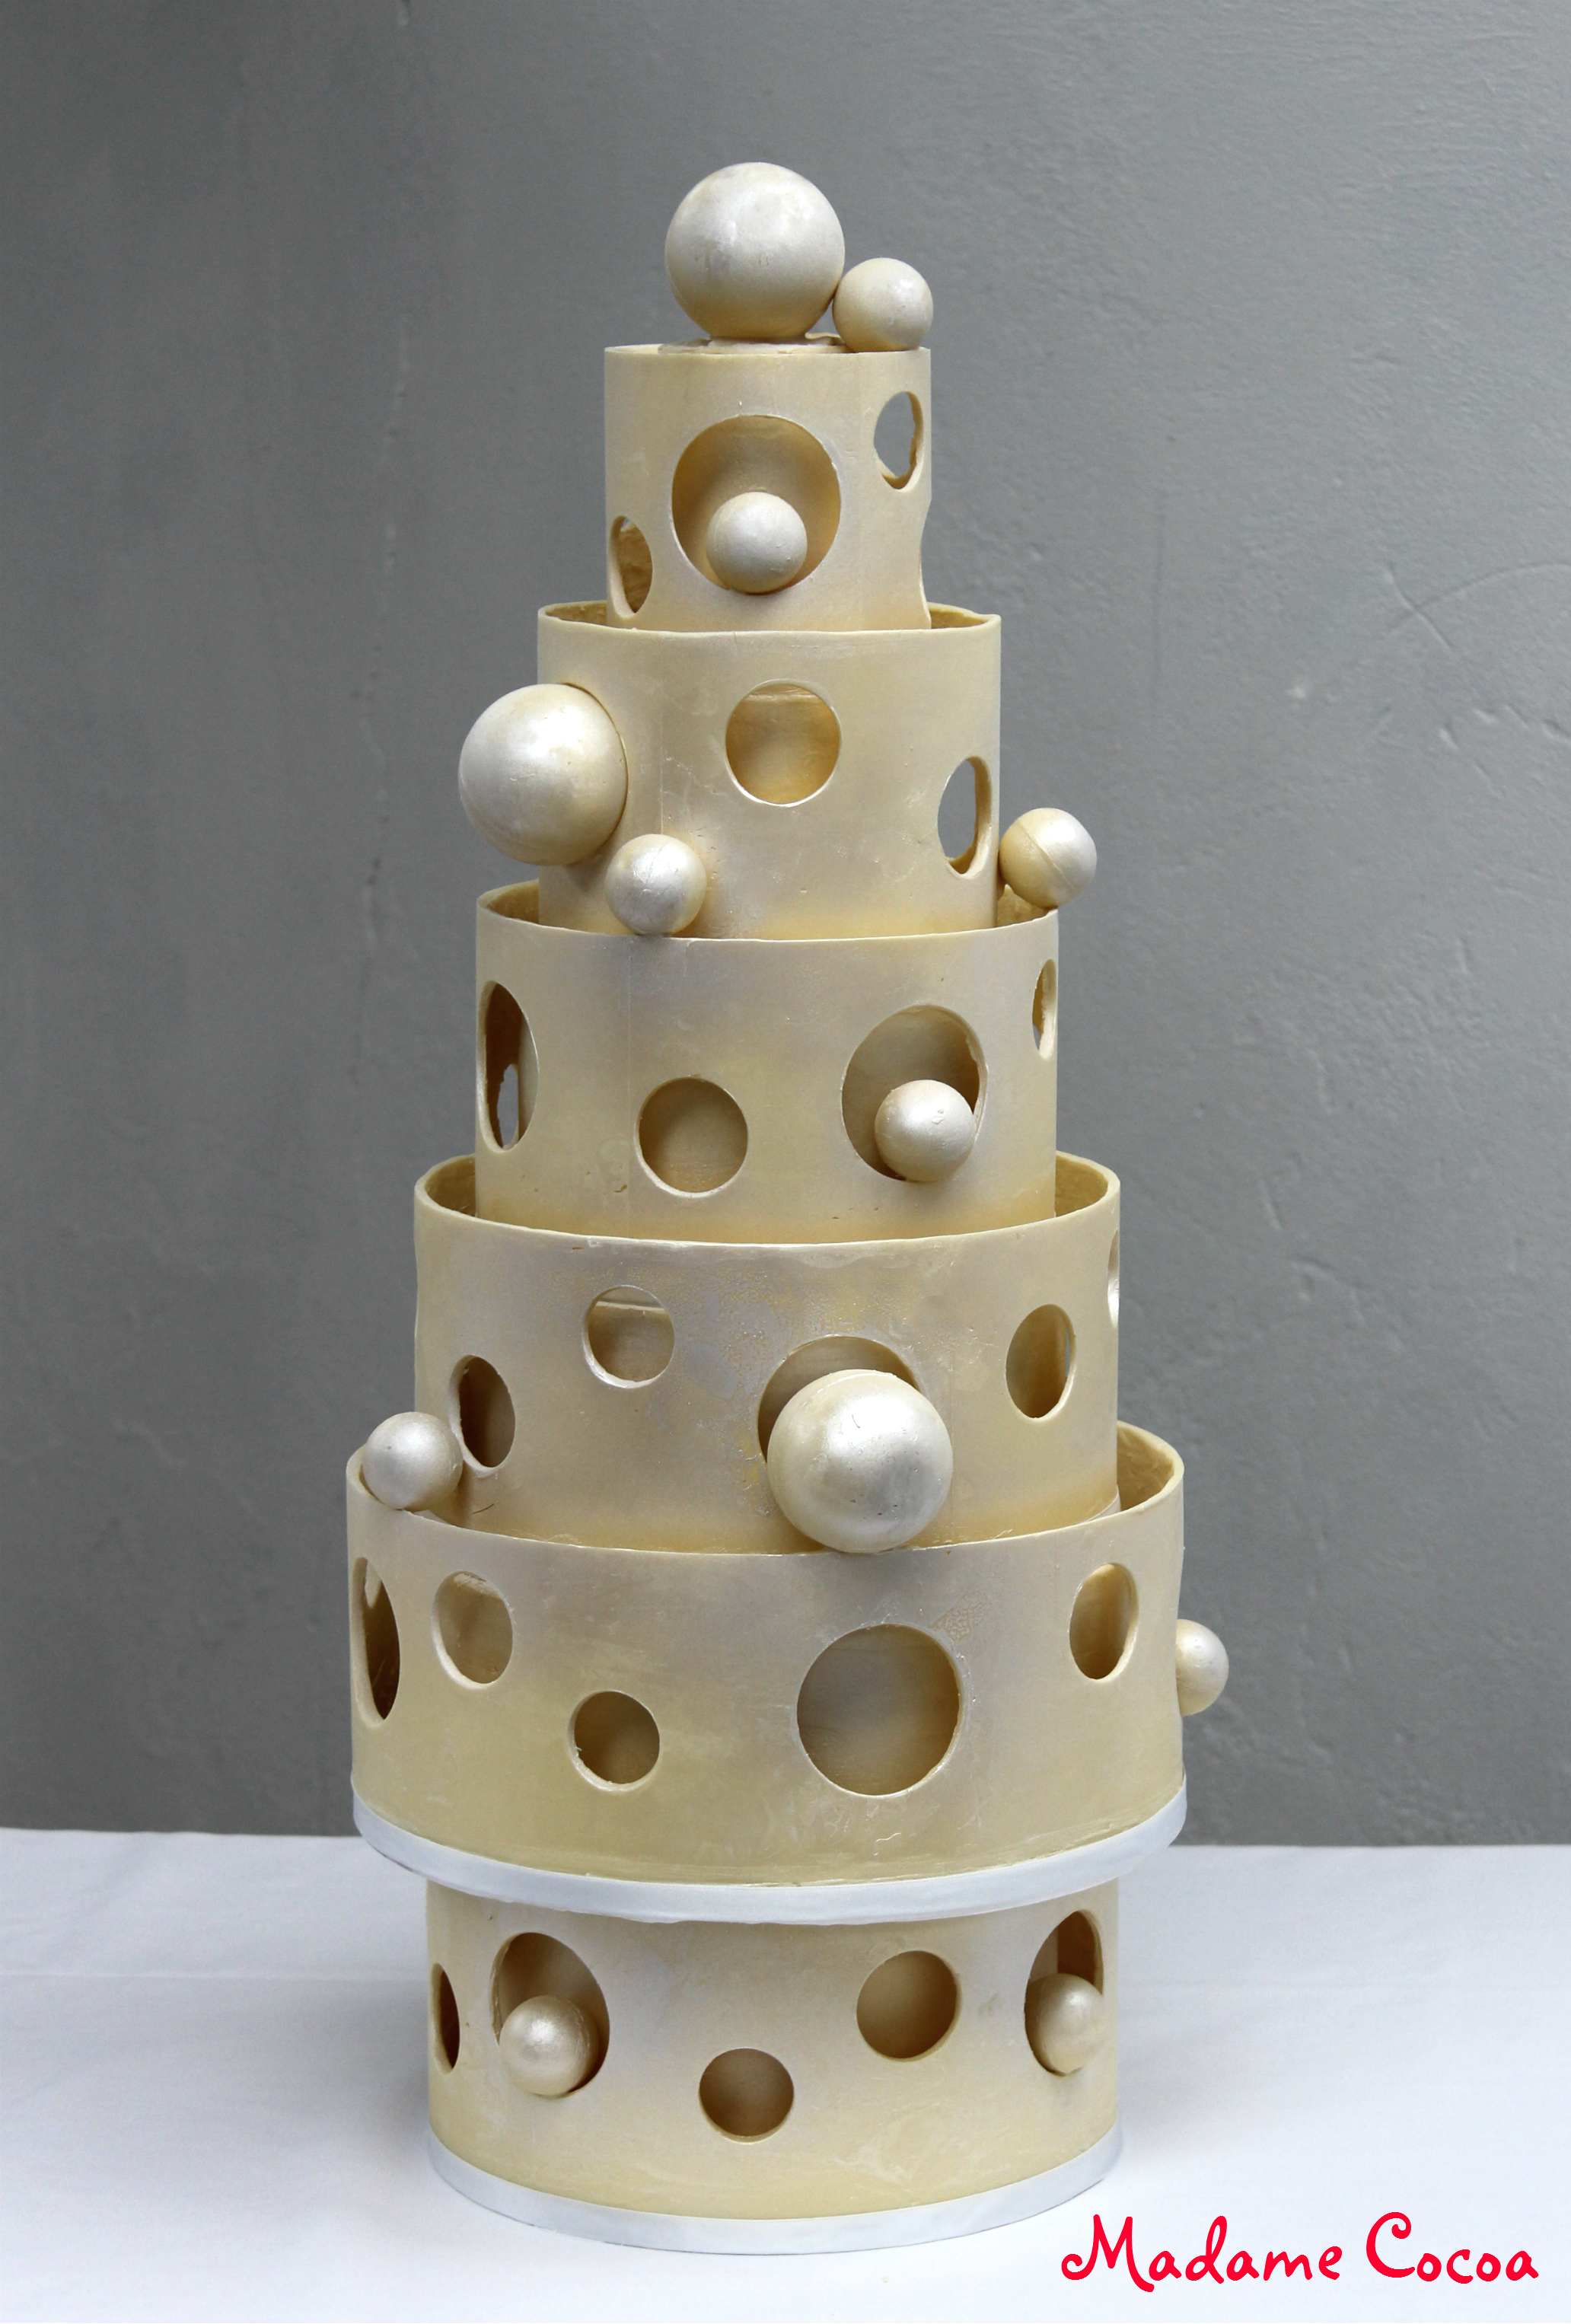 White chocolate modern wedding cake